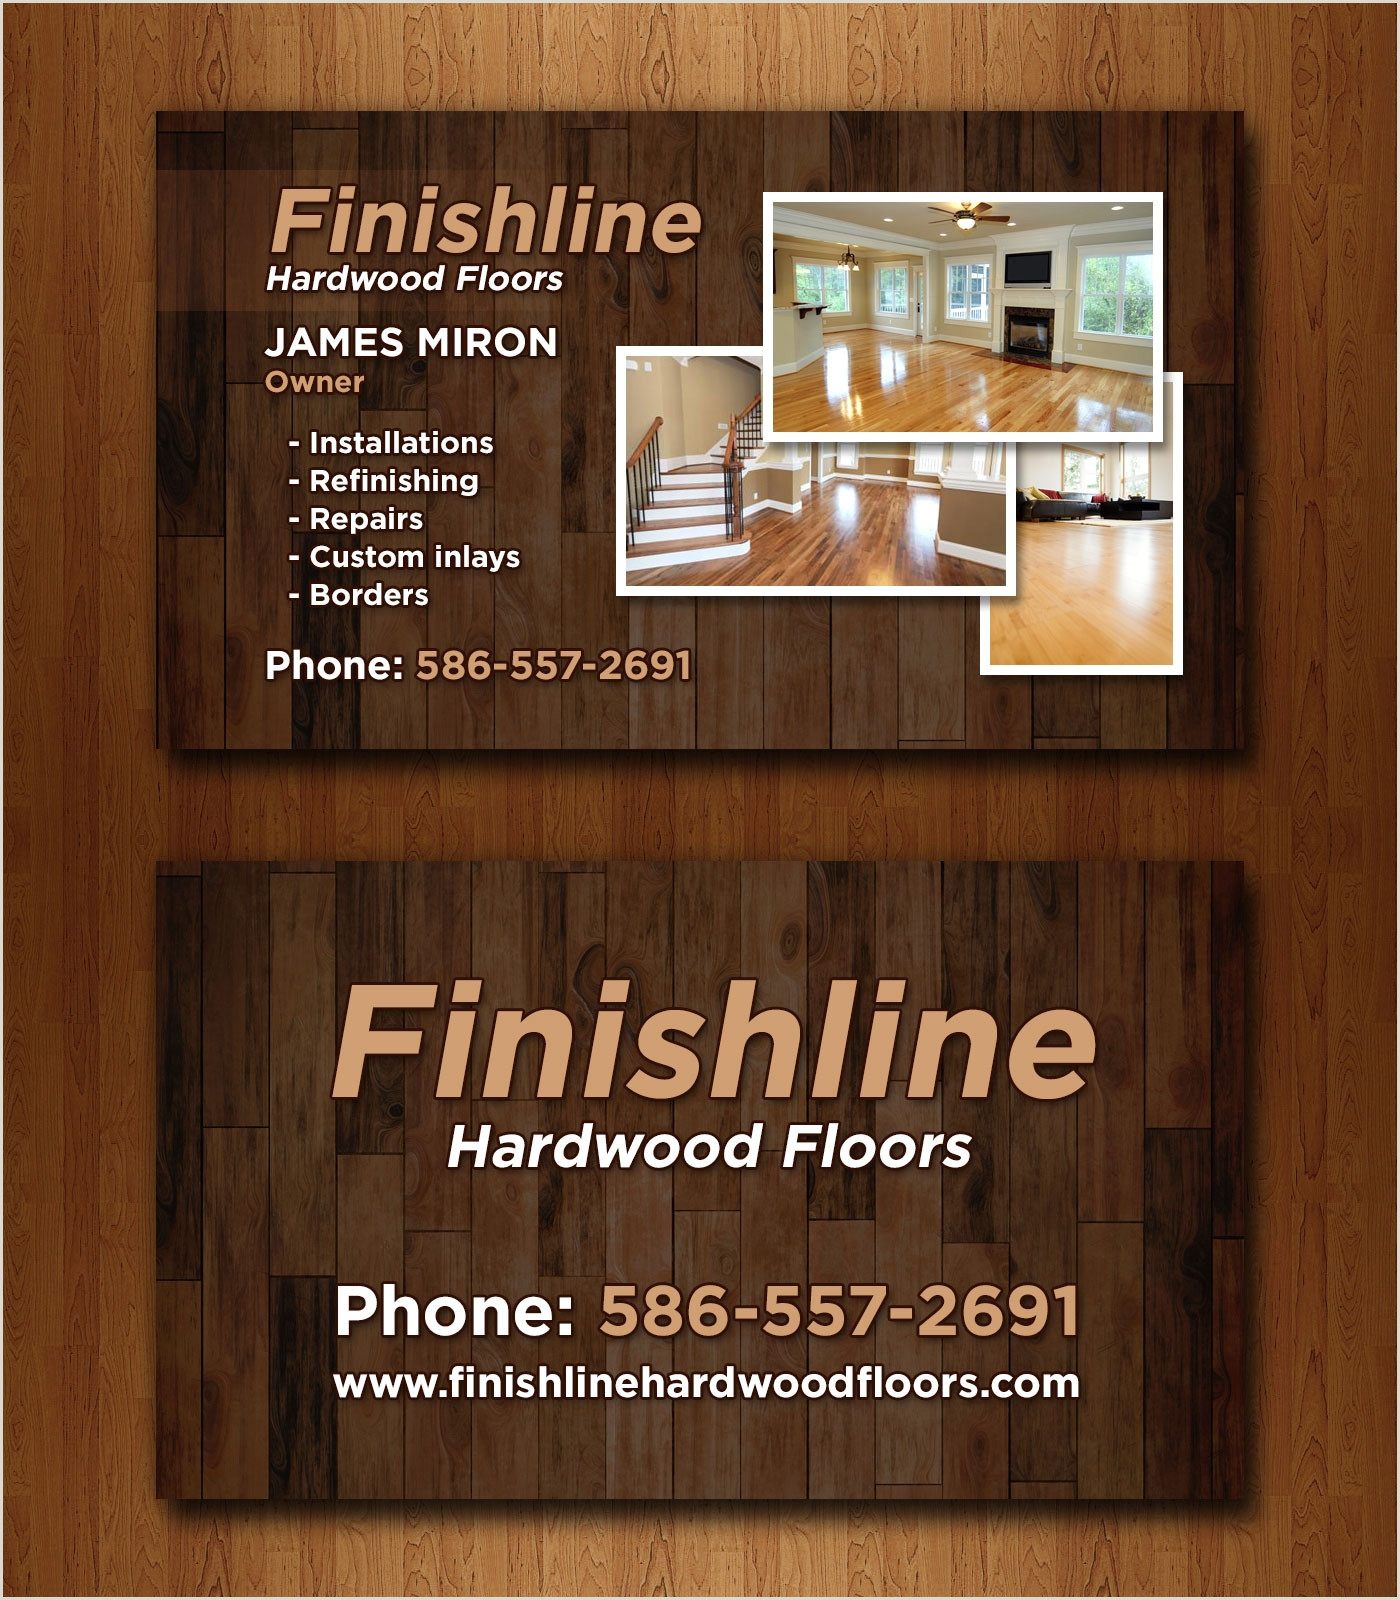 Creative Personal Business Cards 14 Popular Hardwood Flooring Business Card Template